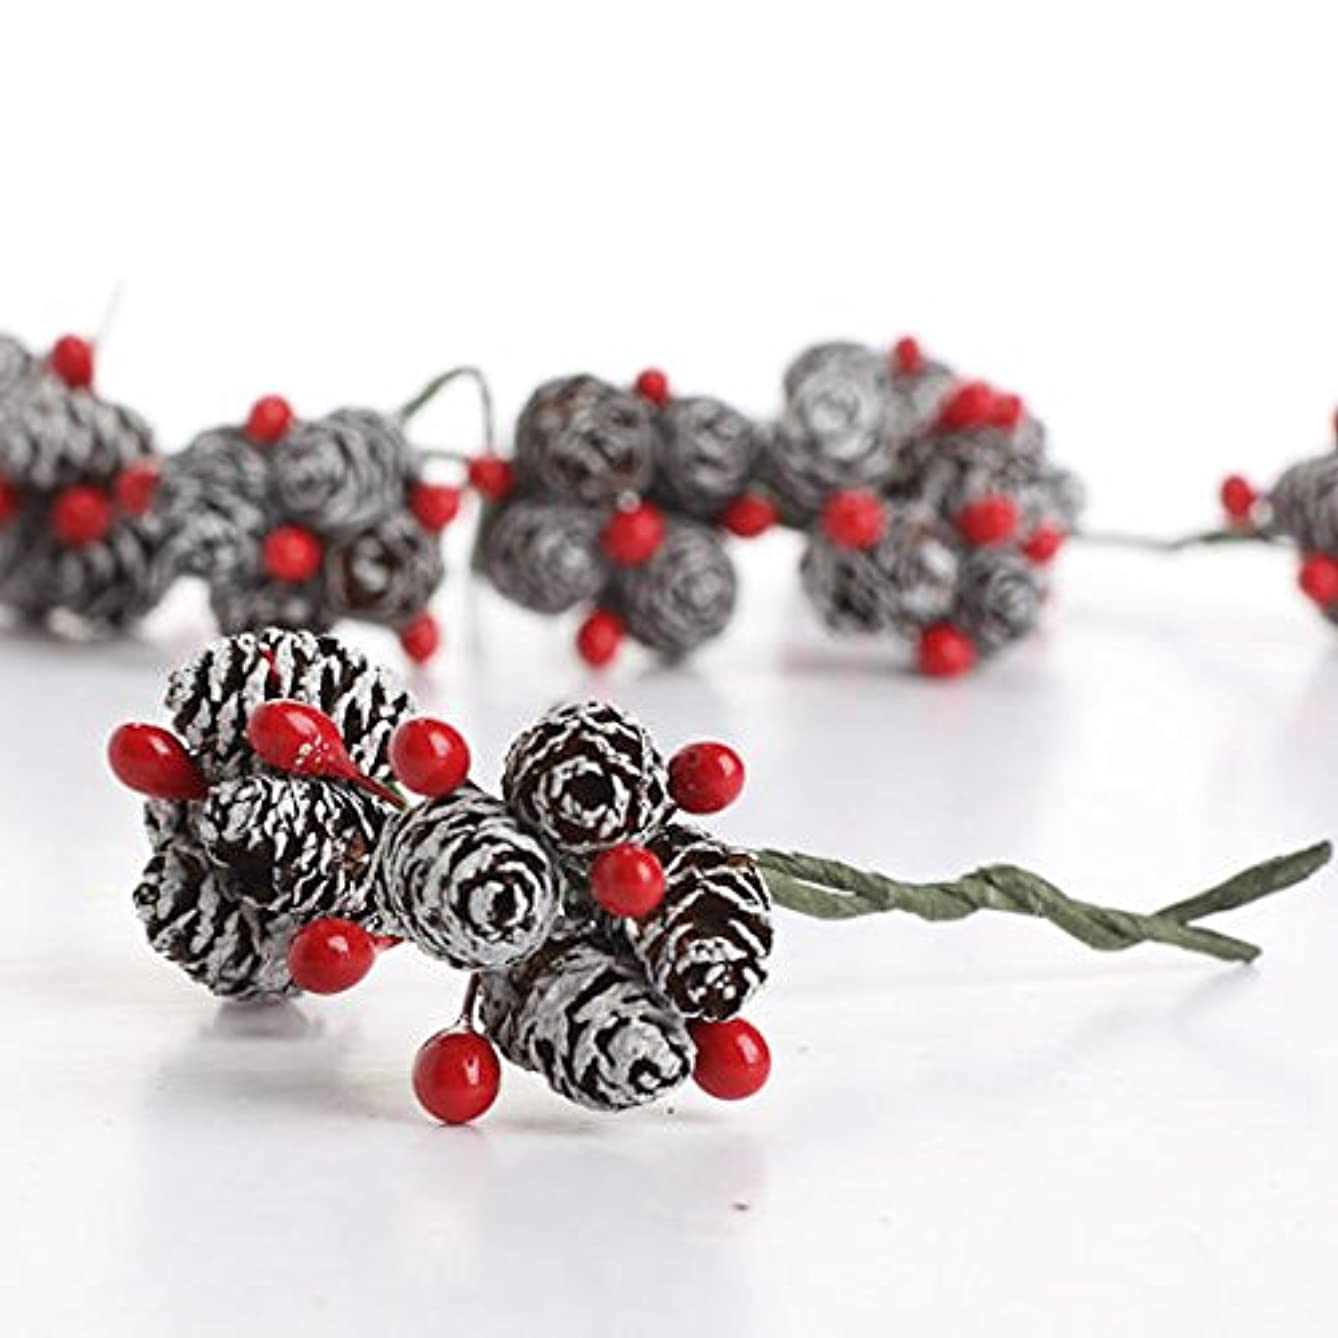 Package of 36 Miniature Wire Stemmed White Frosted Pinecone and Red Berry Embellishing Picks for Christmas and Holiday Decorating